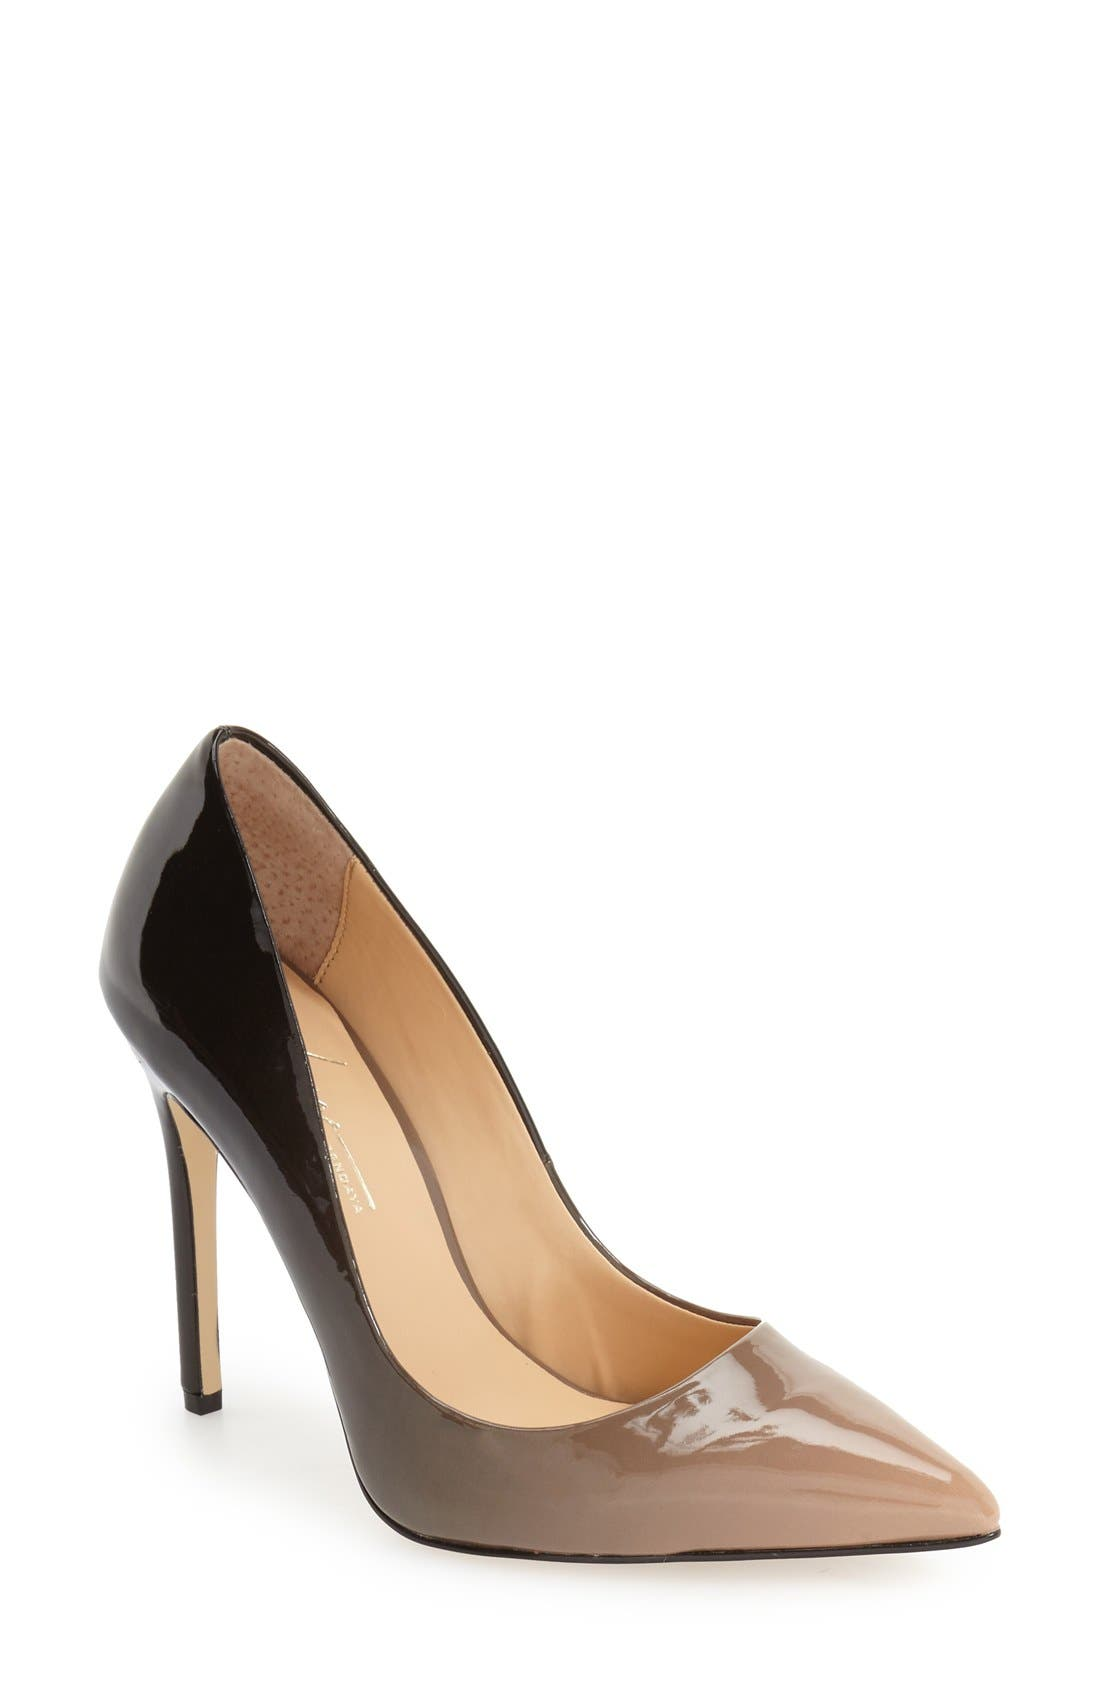 by Zendaya 'Atmore II' Pointy Toe Pump,                         Main,                         color, Black/ Blush Patent